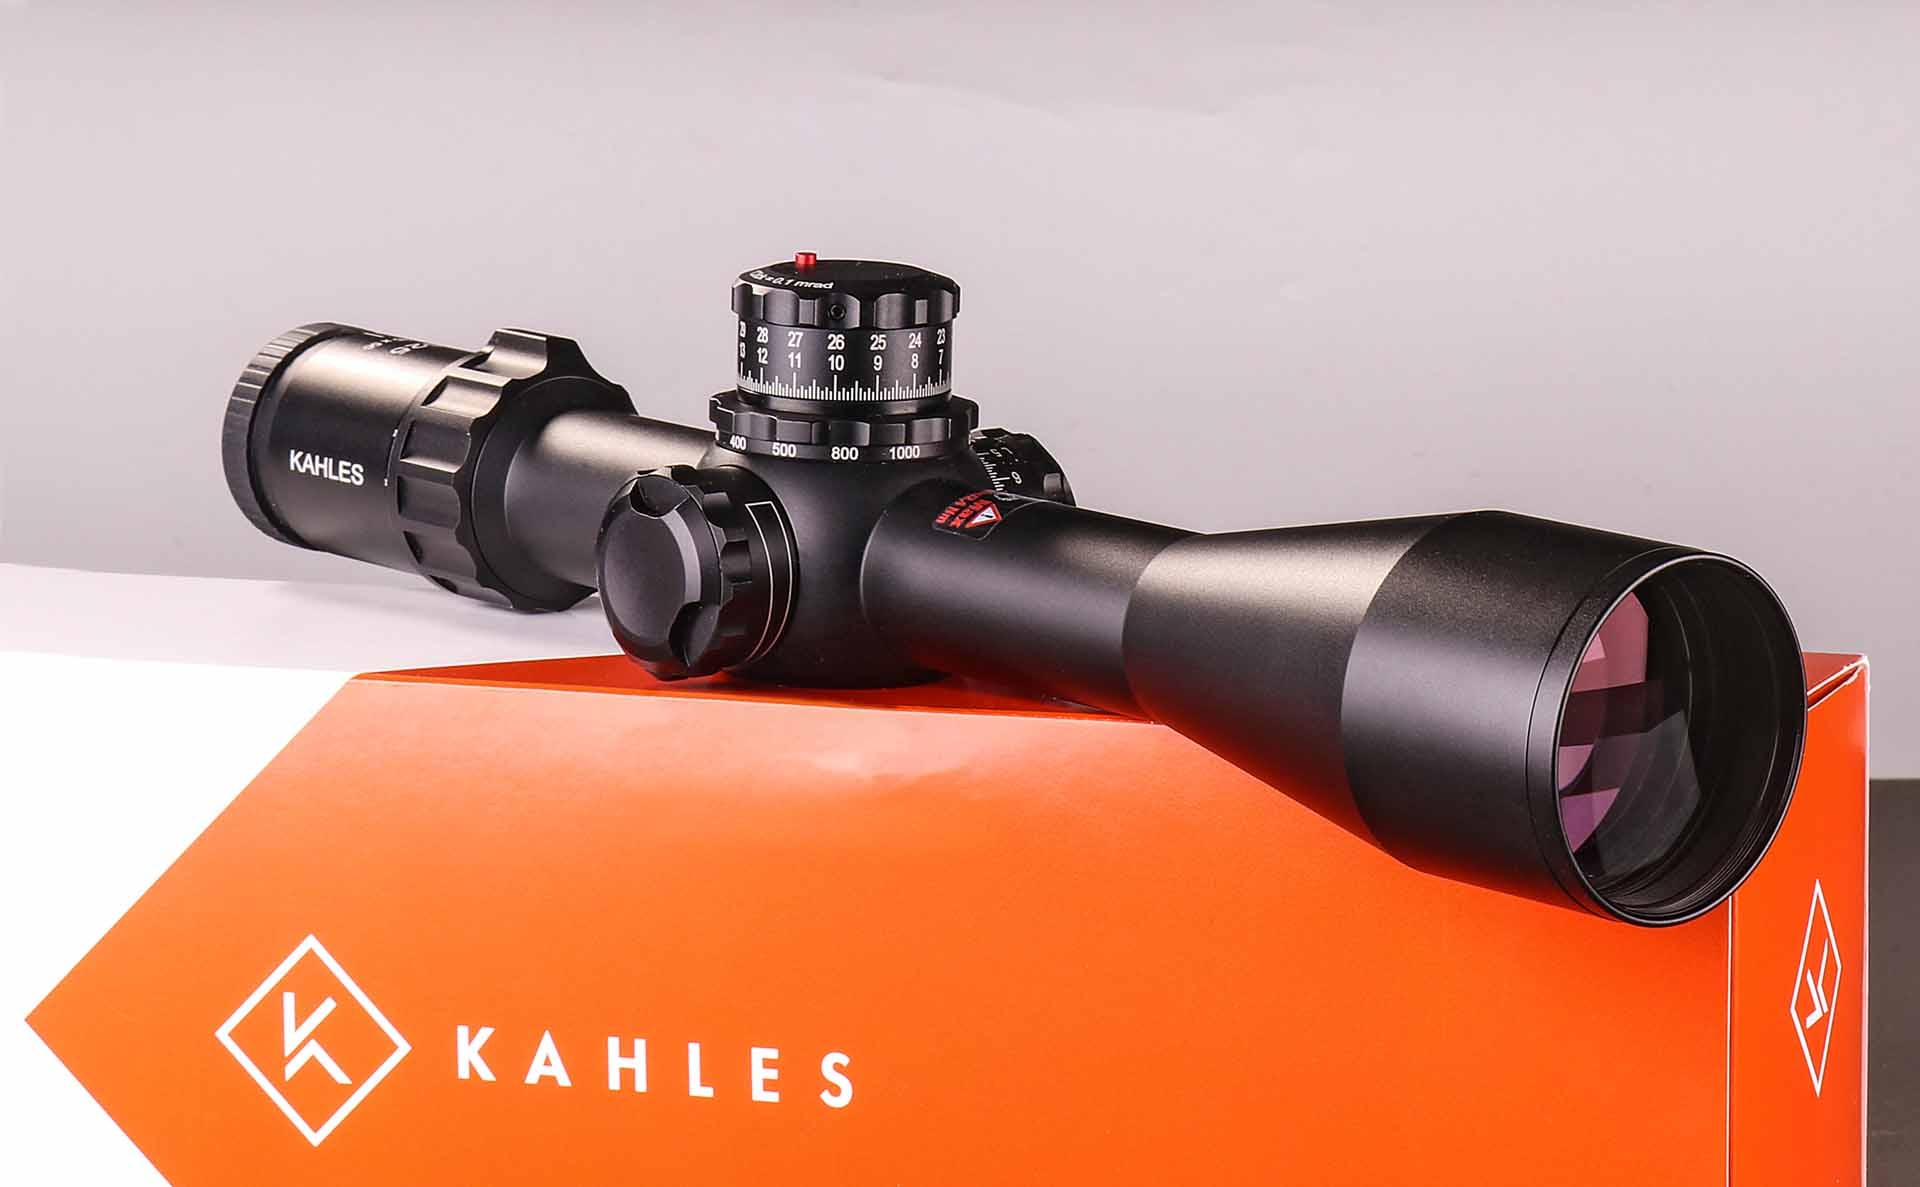 The Kahles K525i 5-25x56 tactical riflescope for lomg range shooting